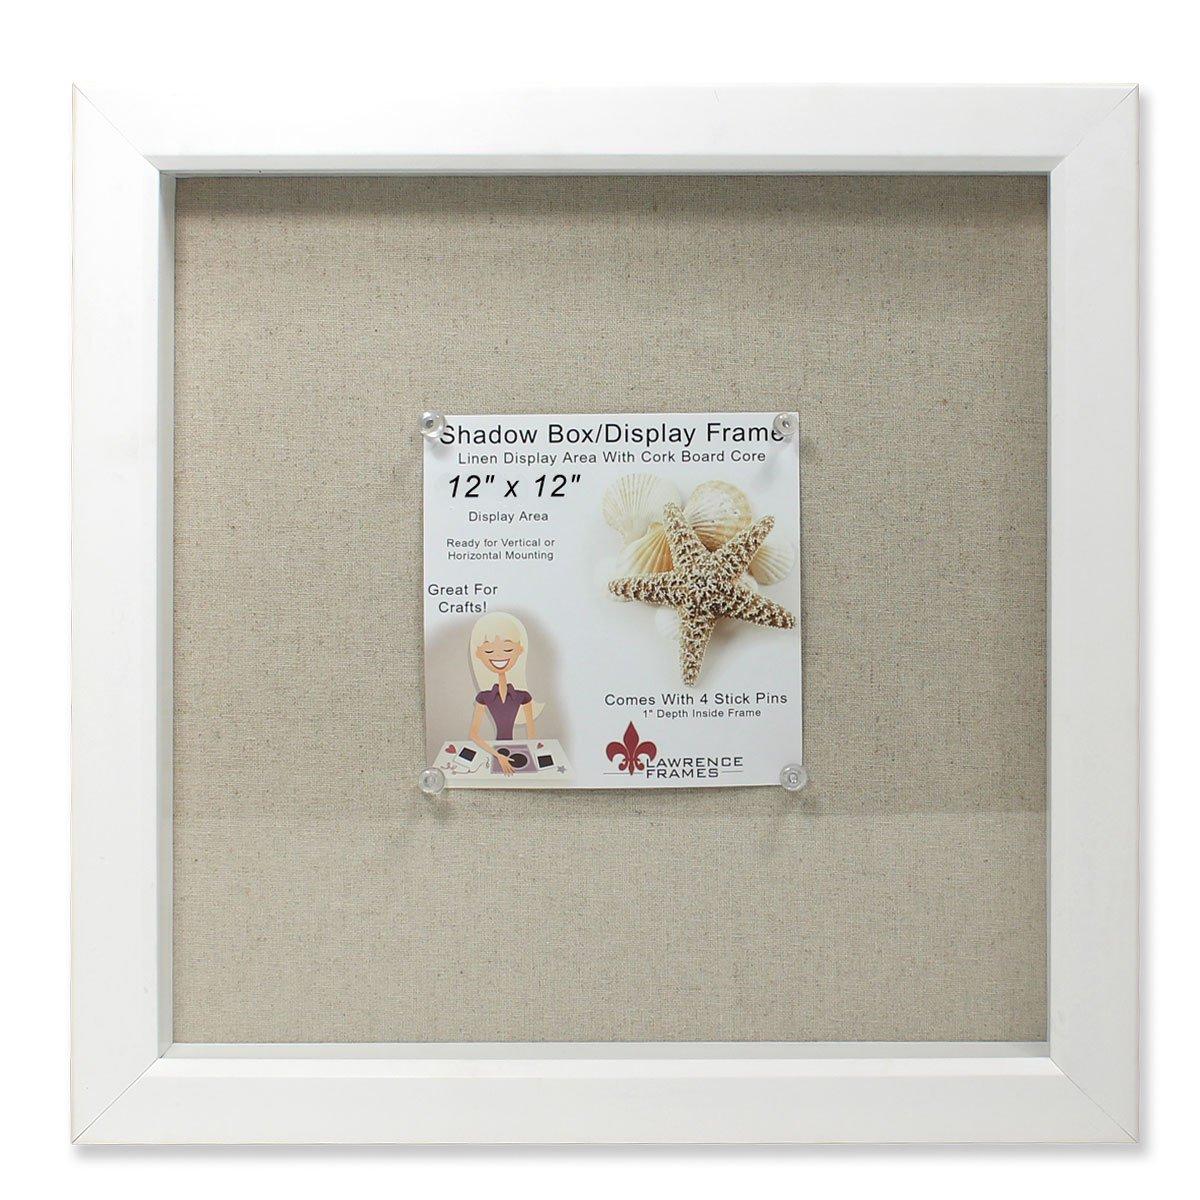 Amazon.com - Lawrence Frames 168112 Shadow Box Frame with Linen ...